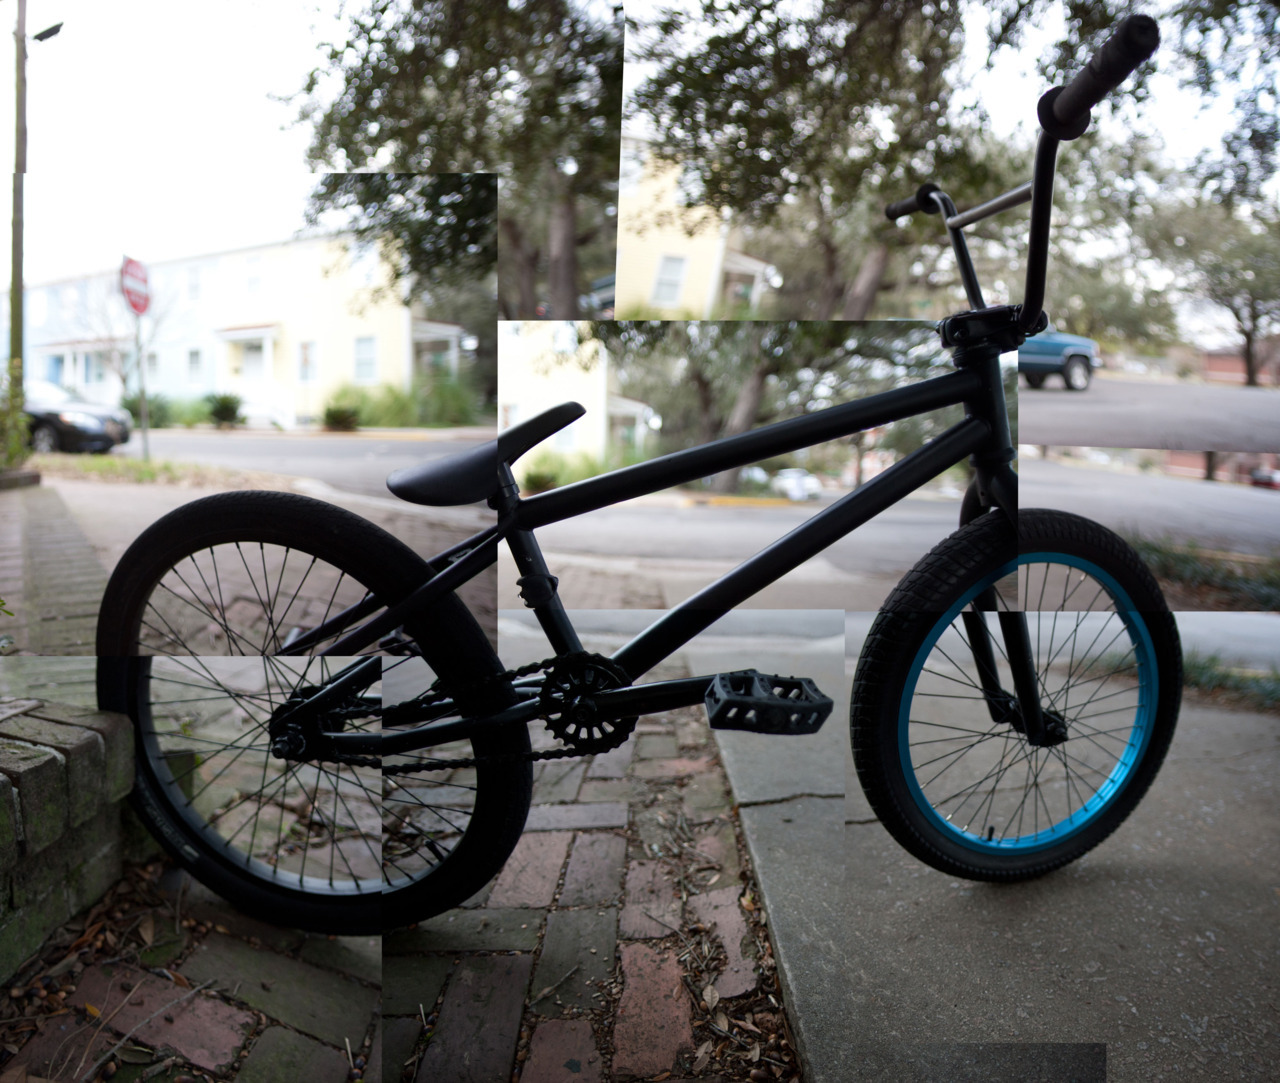 Made a dumb panorama thing of my bmx bike. Shaved off the brake mounts on the top tube and seat stays, smoothed it out, and painted over. Looks pretty legit. wethepeople justice frame, salt components everywhere else.  ~24lbs